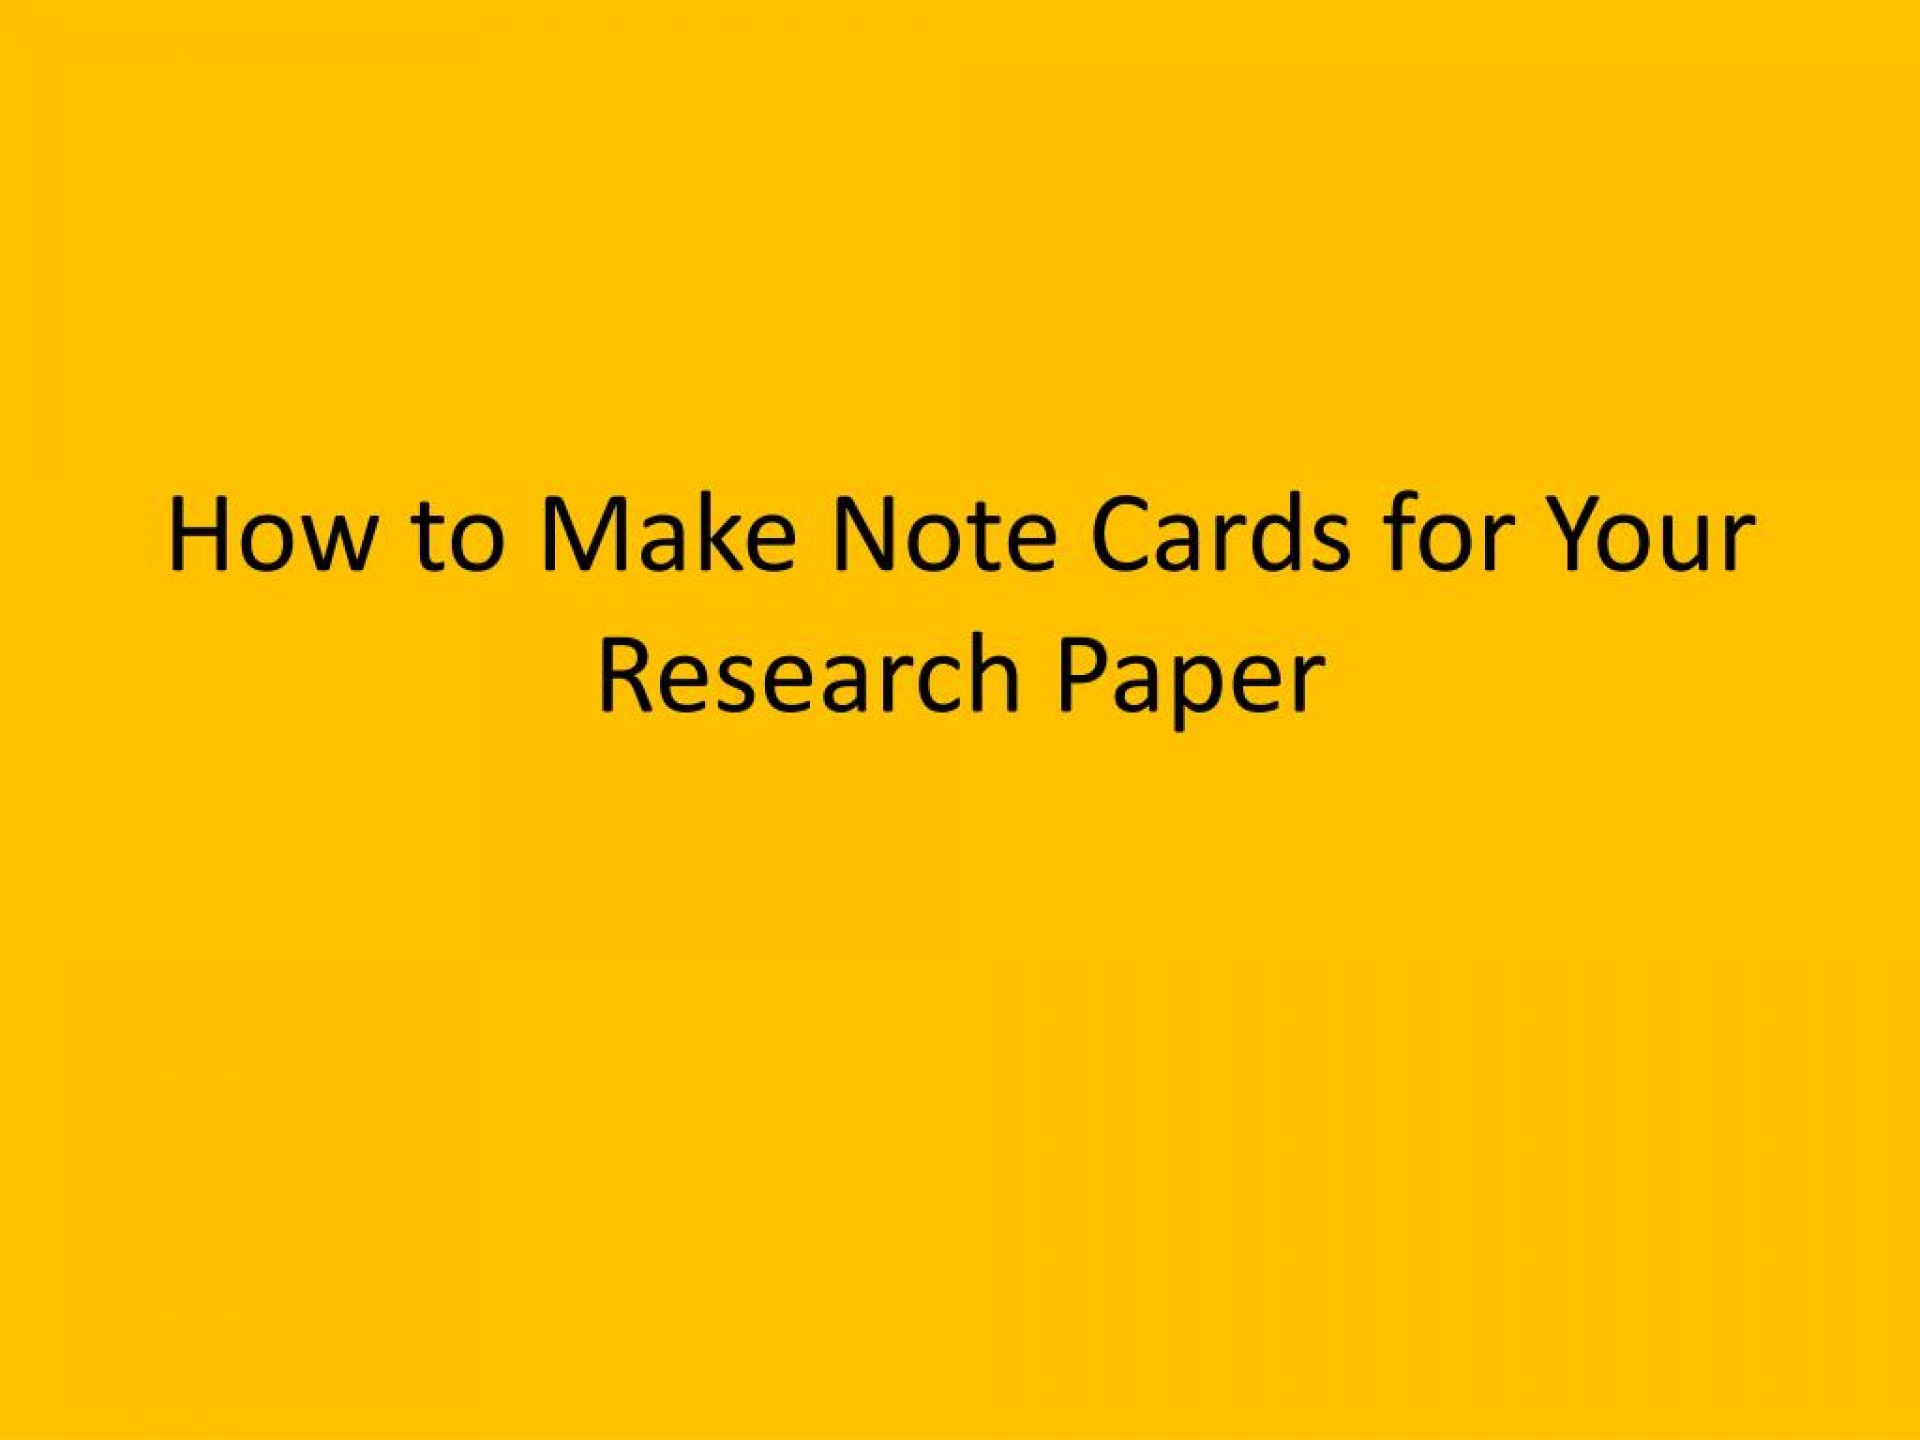 014 Research Paper Note Cards How To Make For Your Stupendous Mla Format Examples 1920